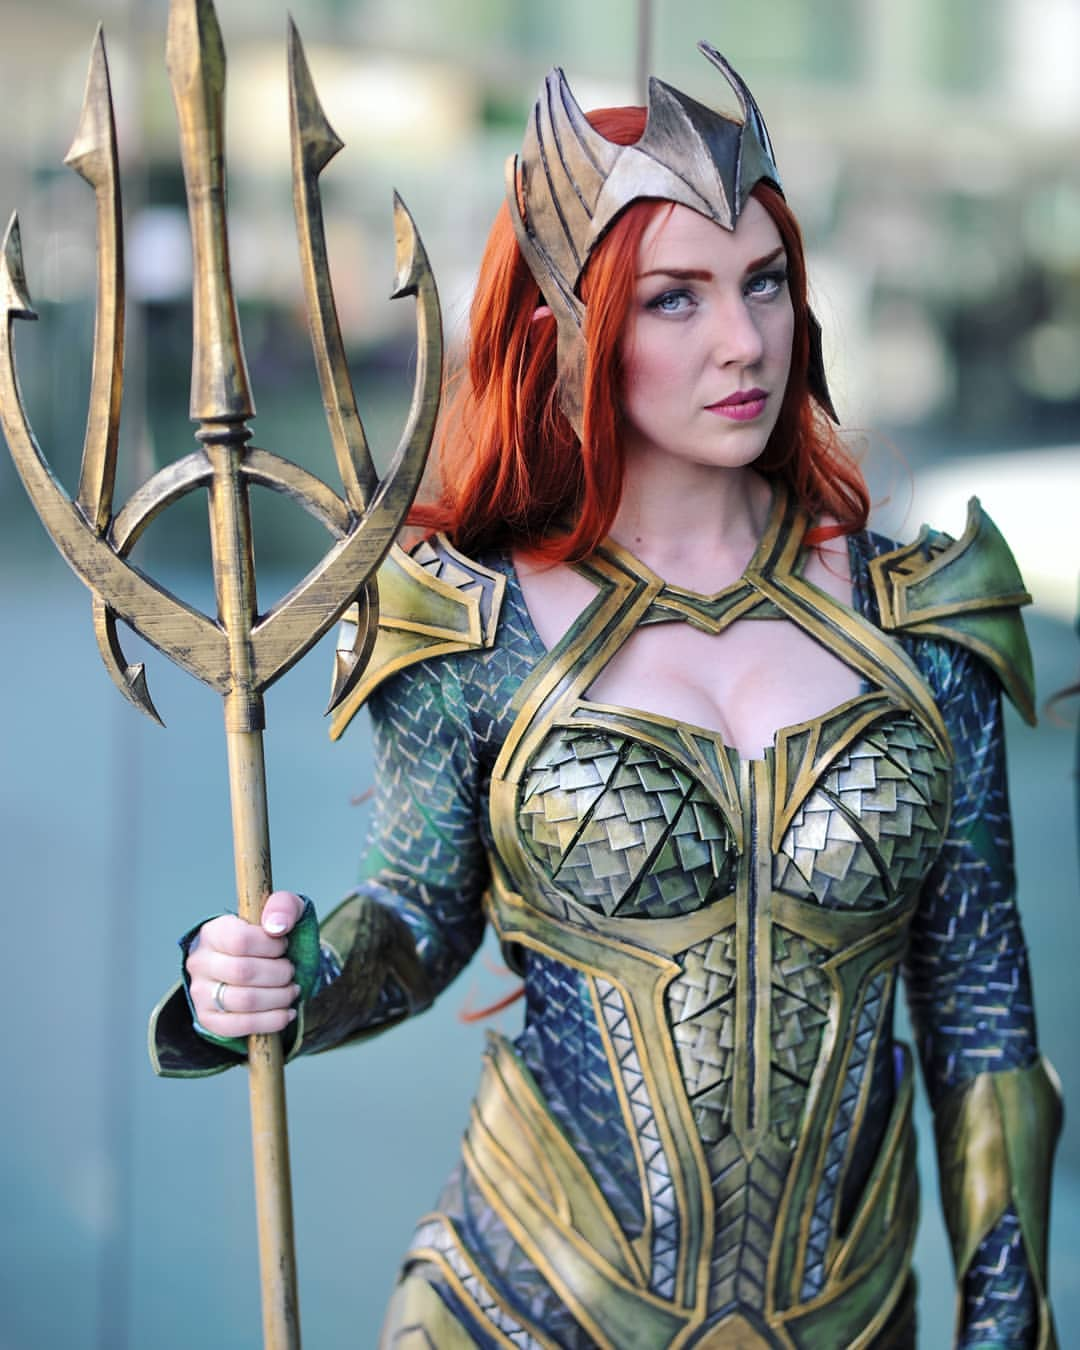 Captain Kaycee looks more than ready to preside over Atlantis as Mera in the following photo set.